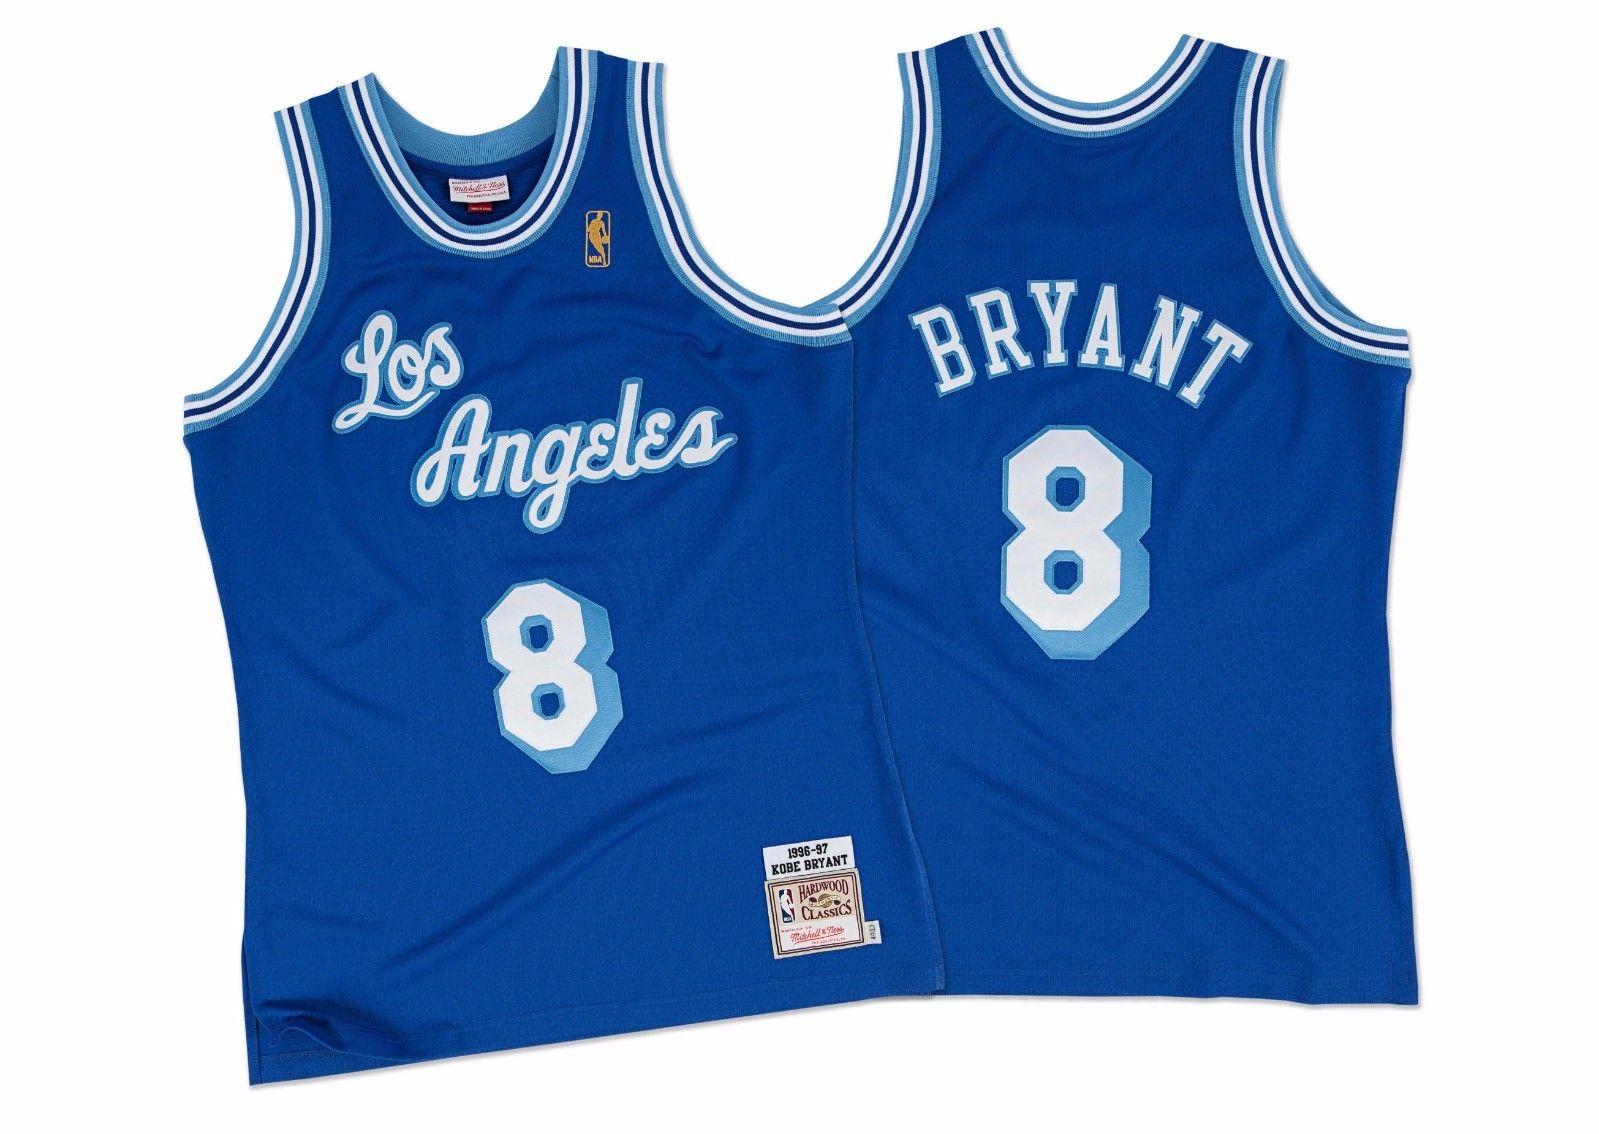 hot sale online 81c46 f82fb Kobe Bryant 1996-97 Authentic Jersey Los Angeles Lakers